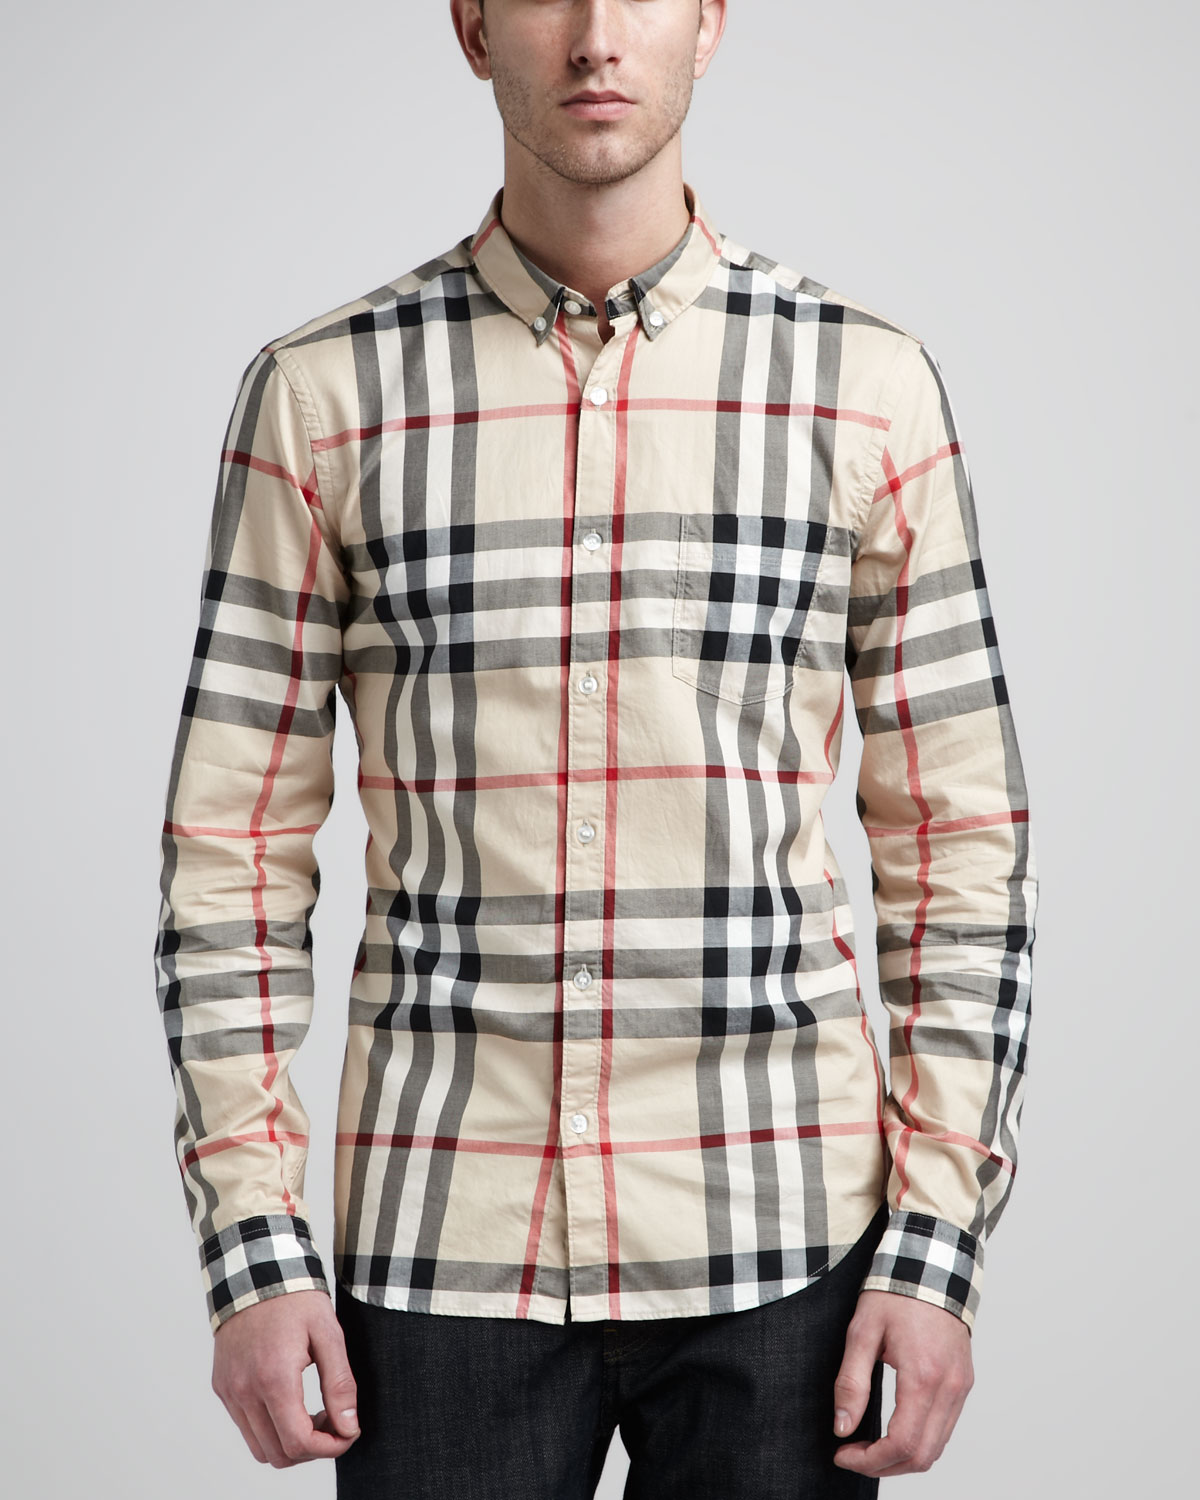 buberry outlet e4z6  burberry brit shirt for men